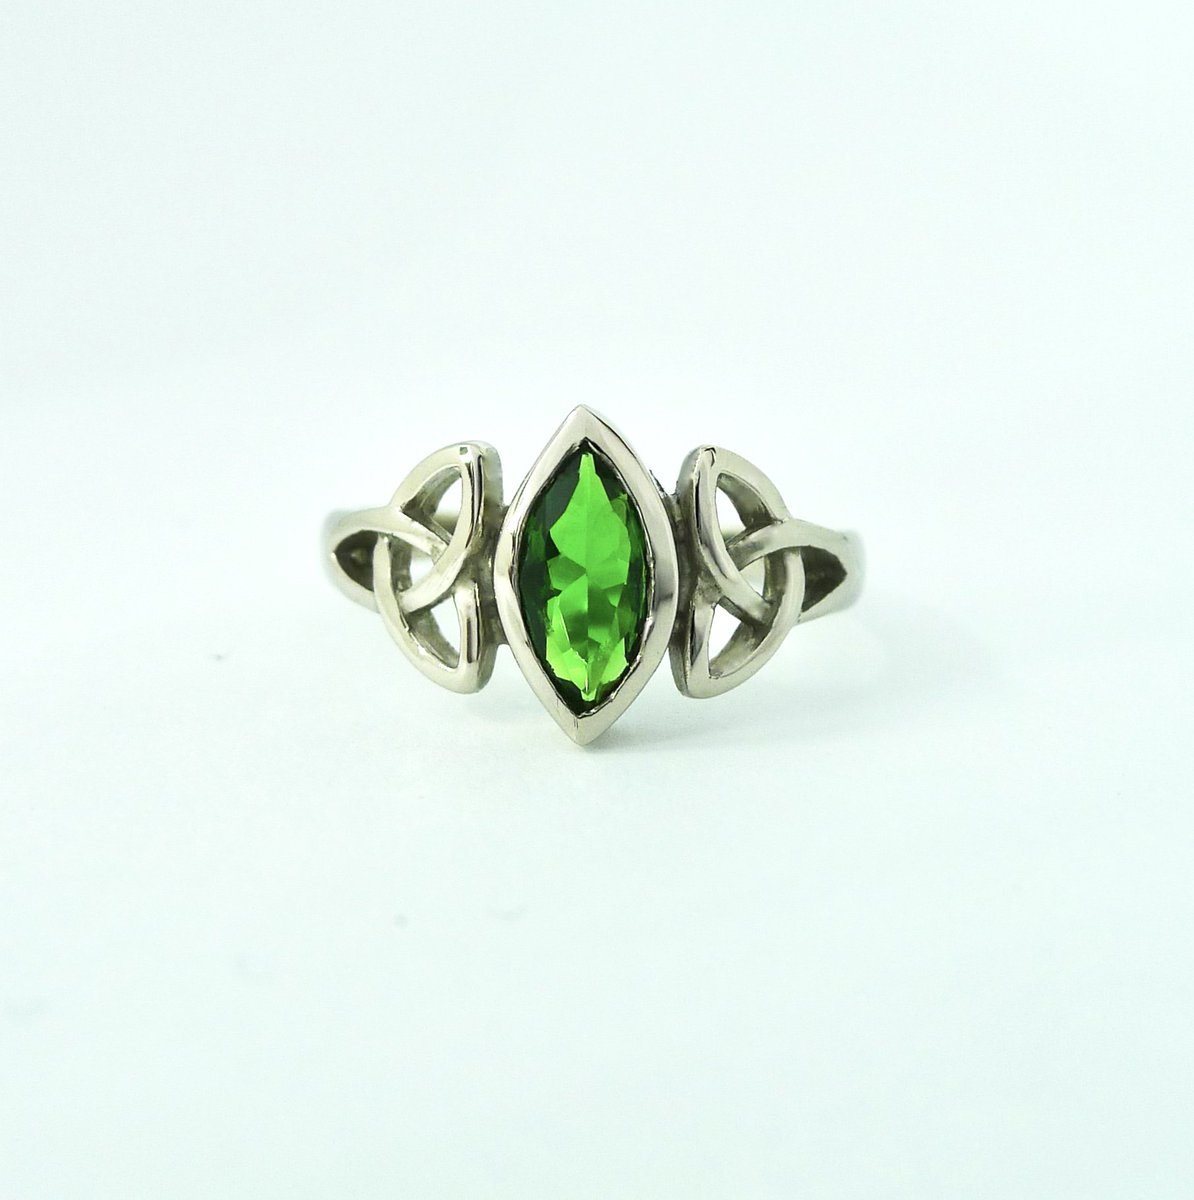 picture also of gemstone called peridot photo olivine stock